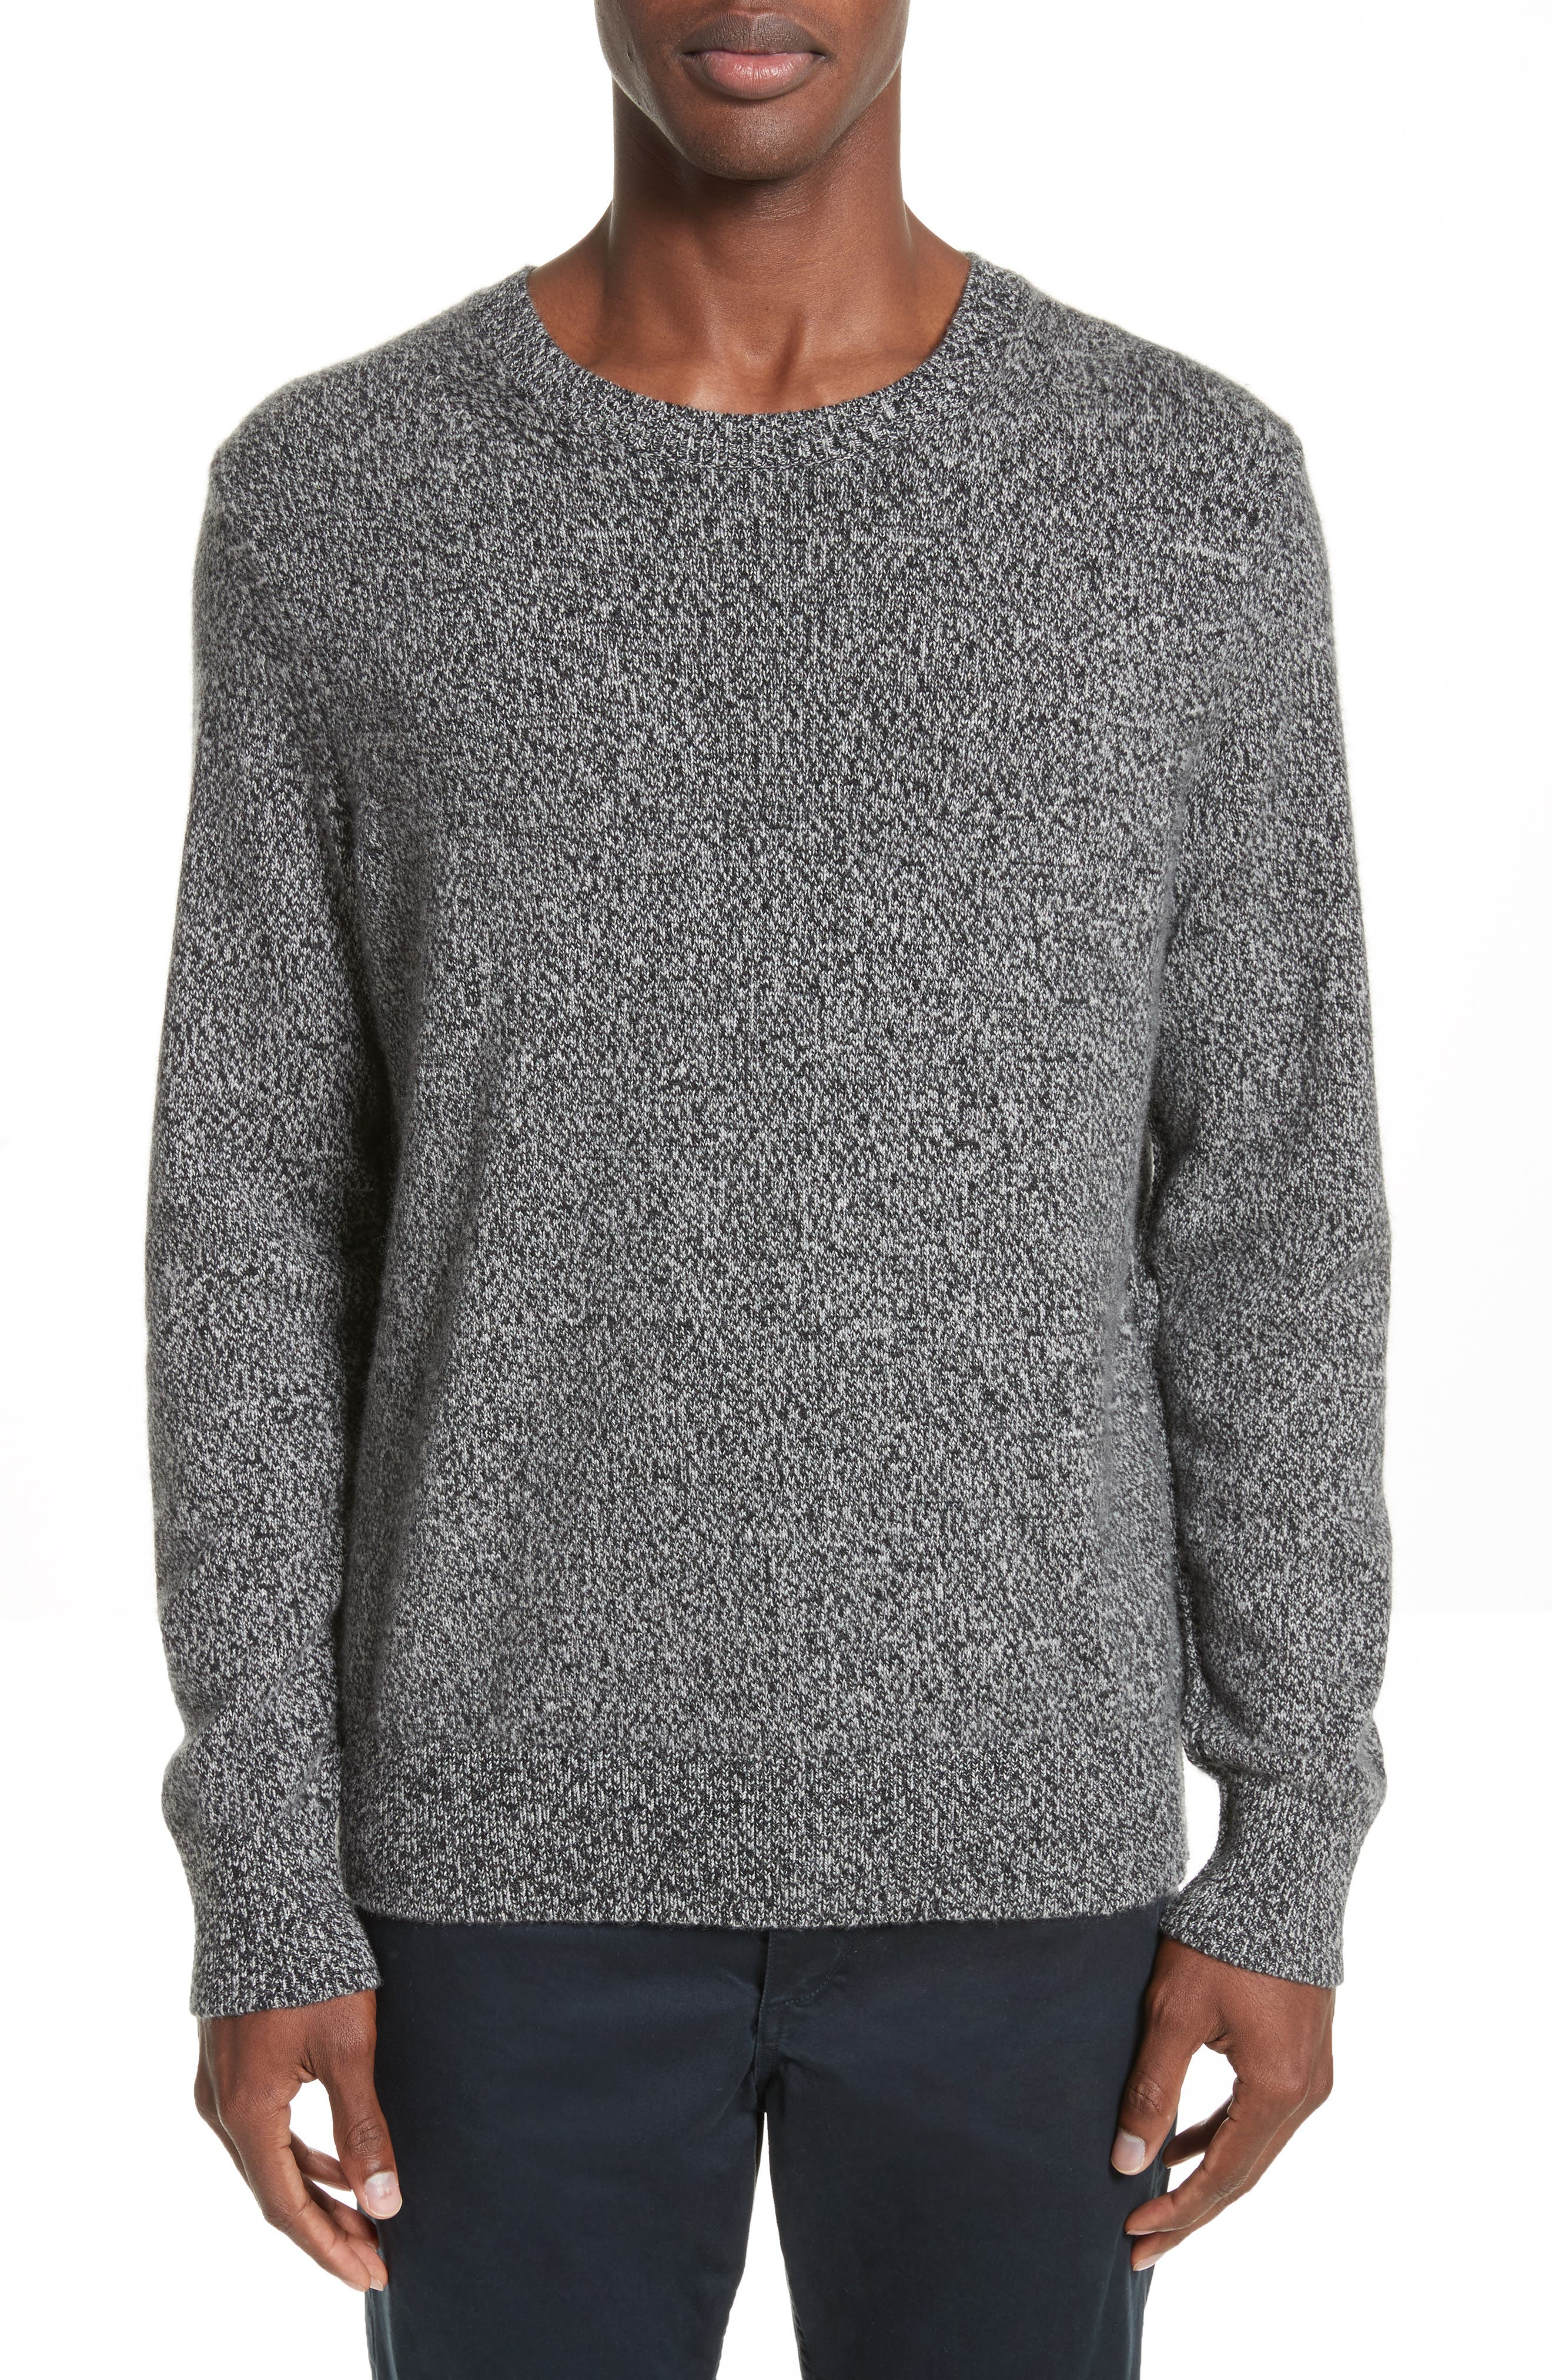 Holdon Cashmere Sweater,                         Main,                         color, 001